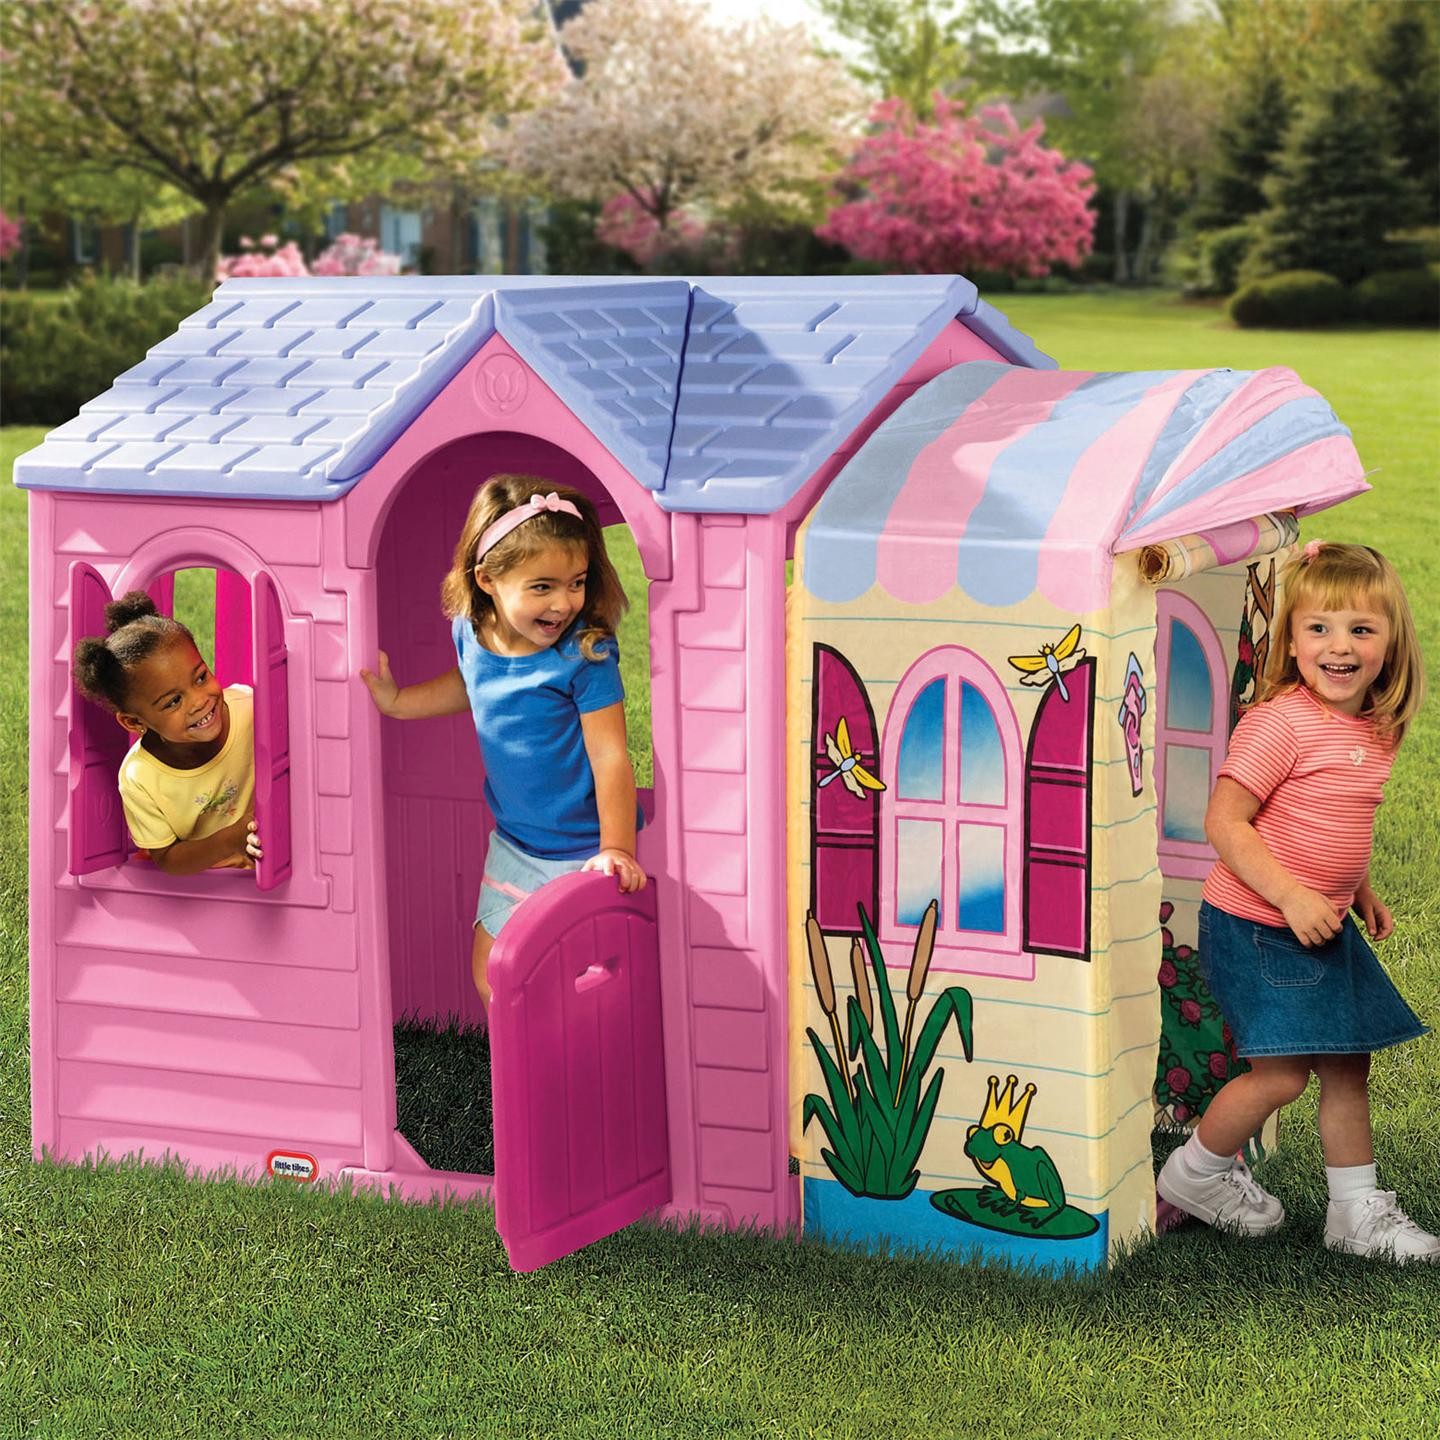 Little tikes princess garden playhouse new wendy house ebay for Piani di casa cottage storybook